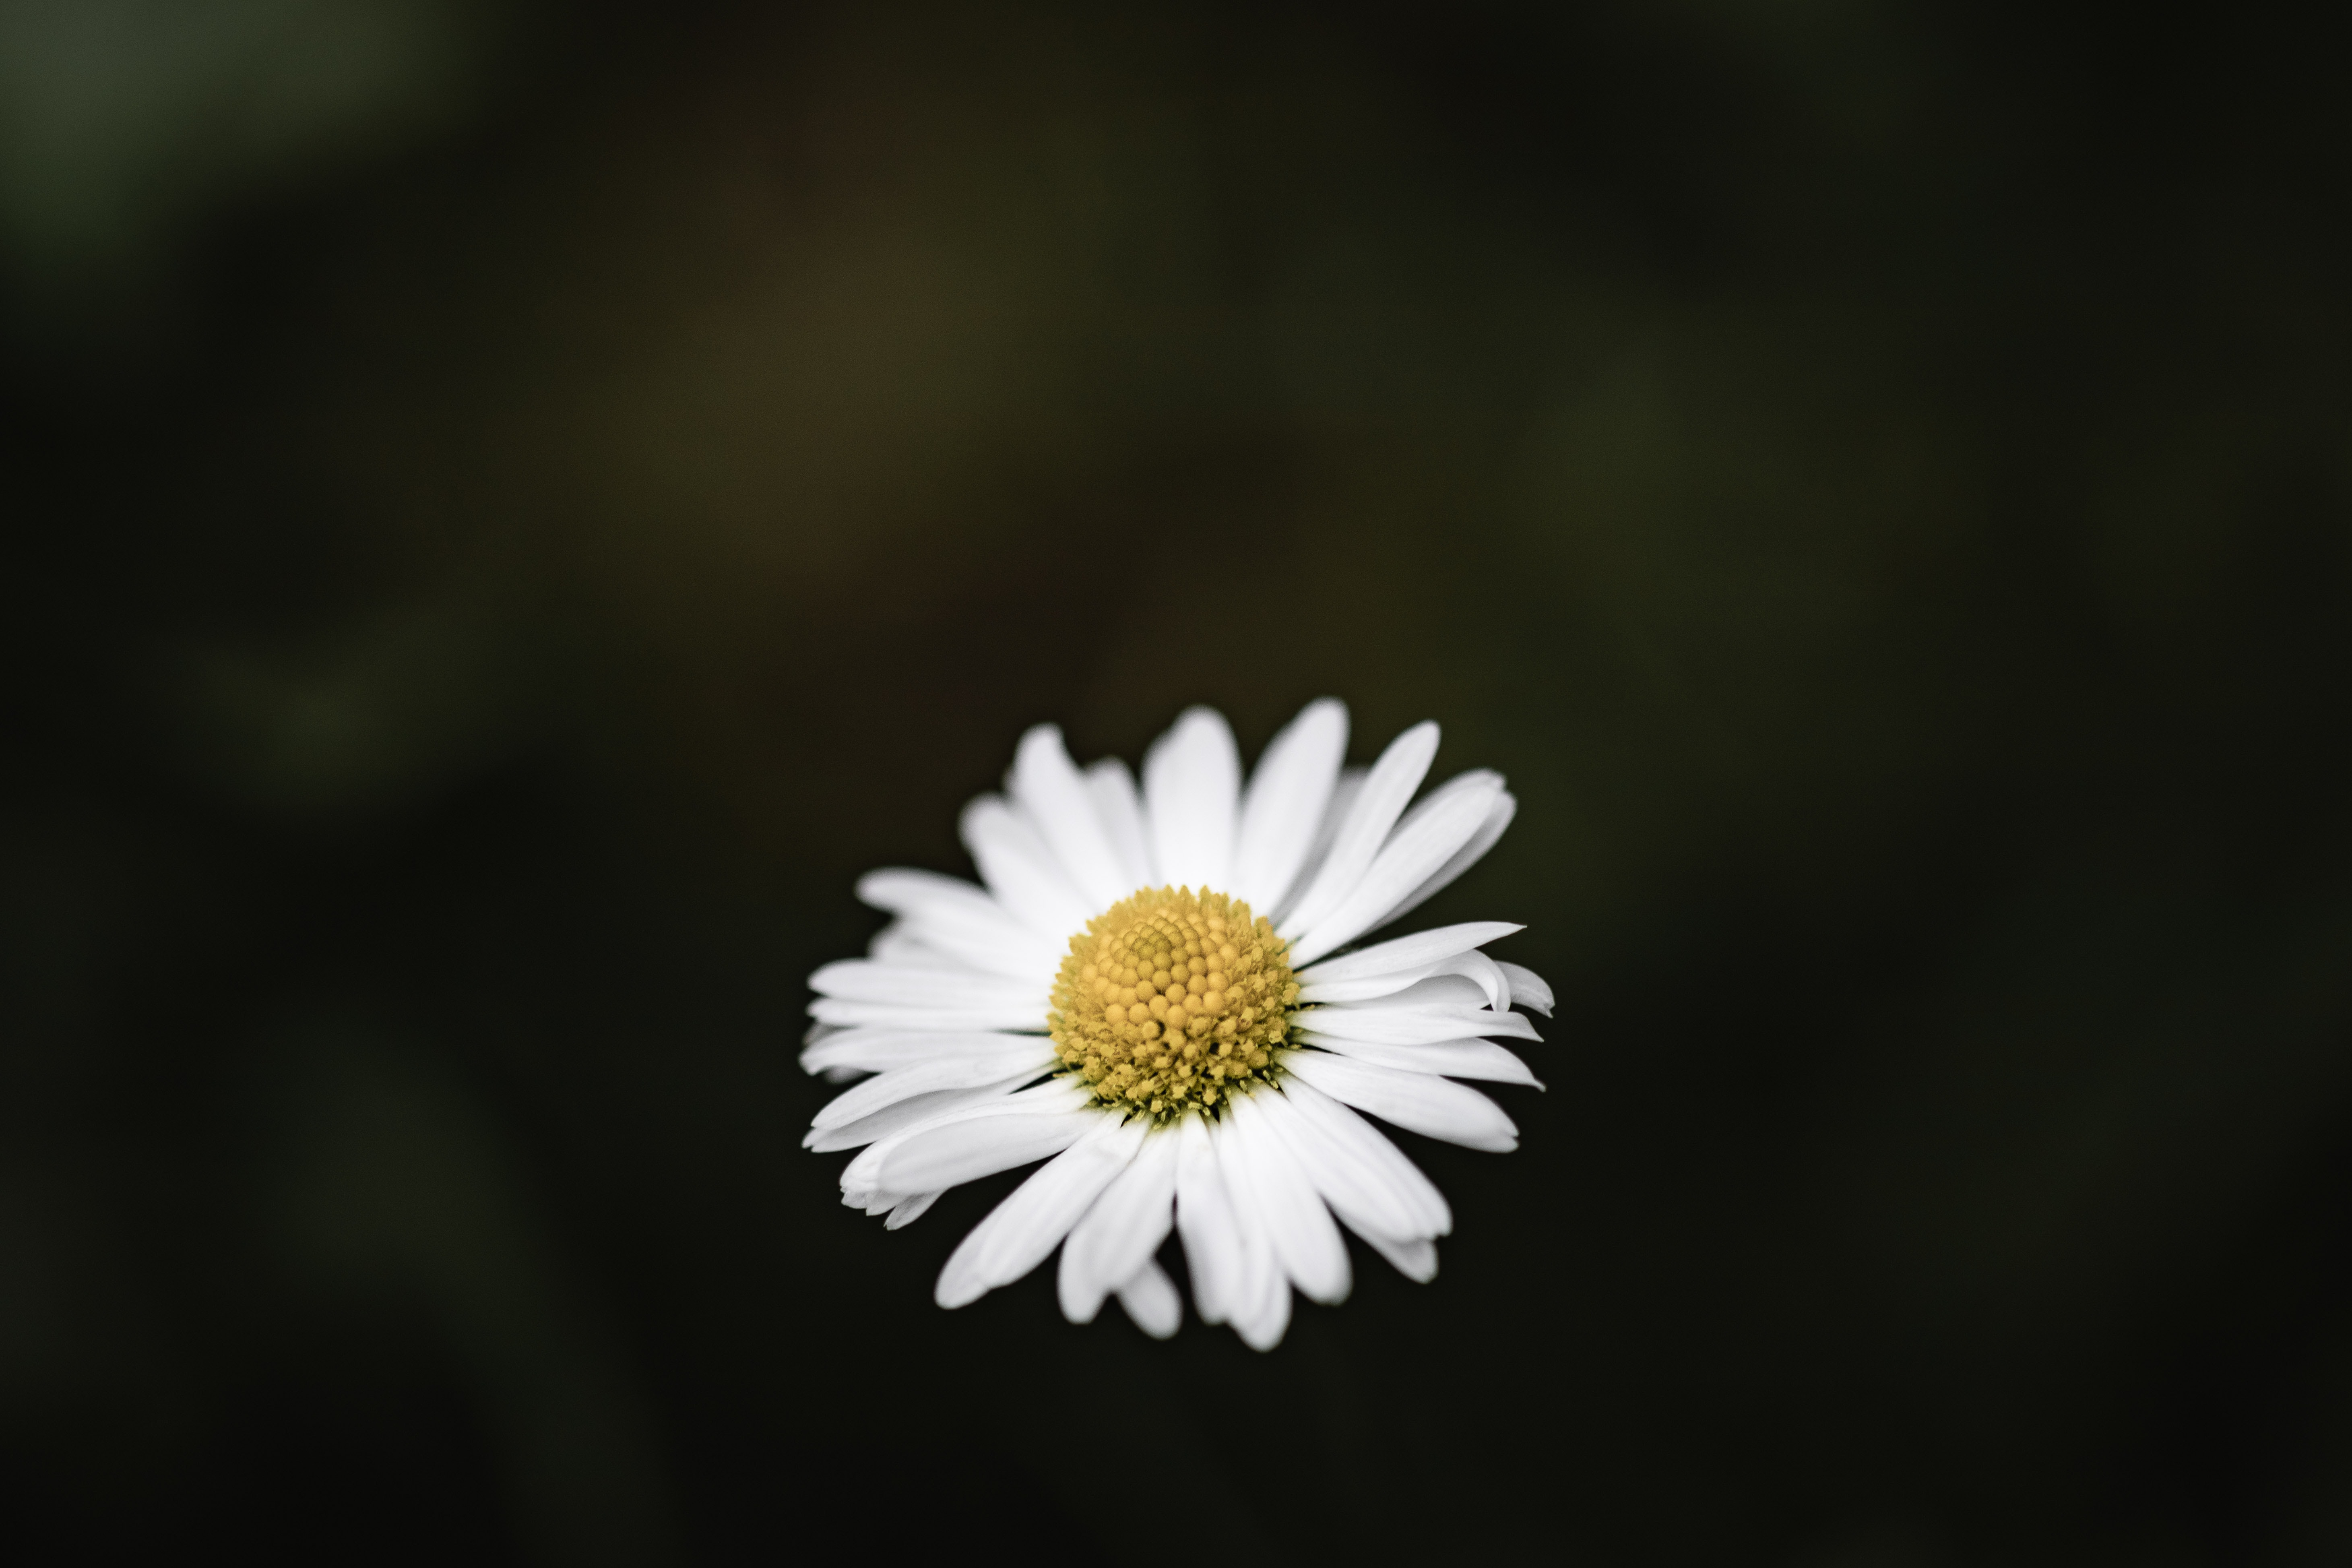 white and yellow daisy flower